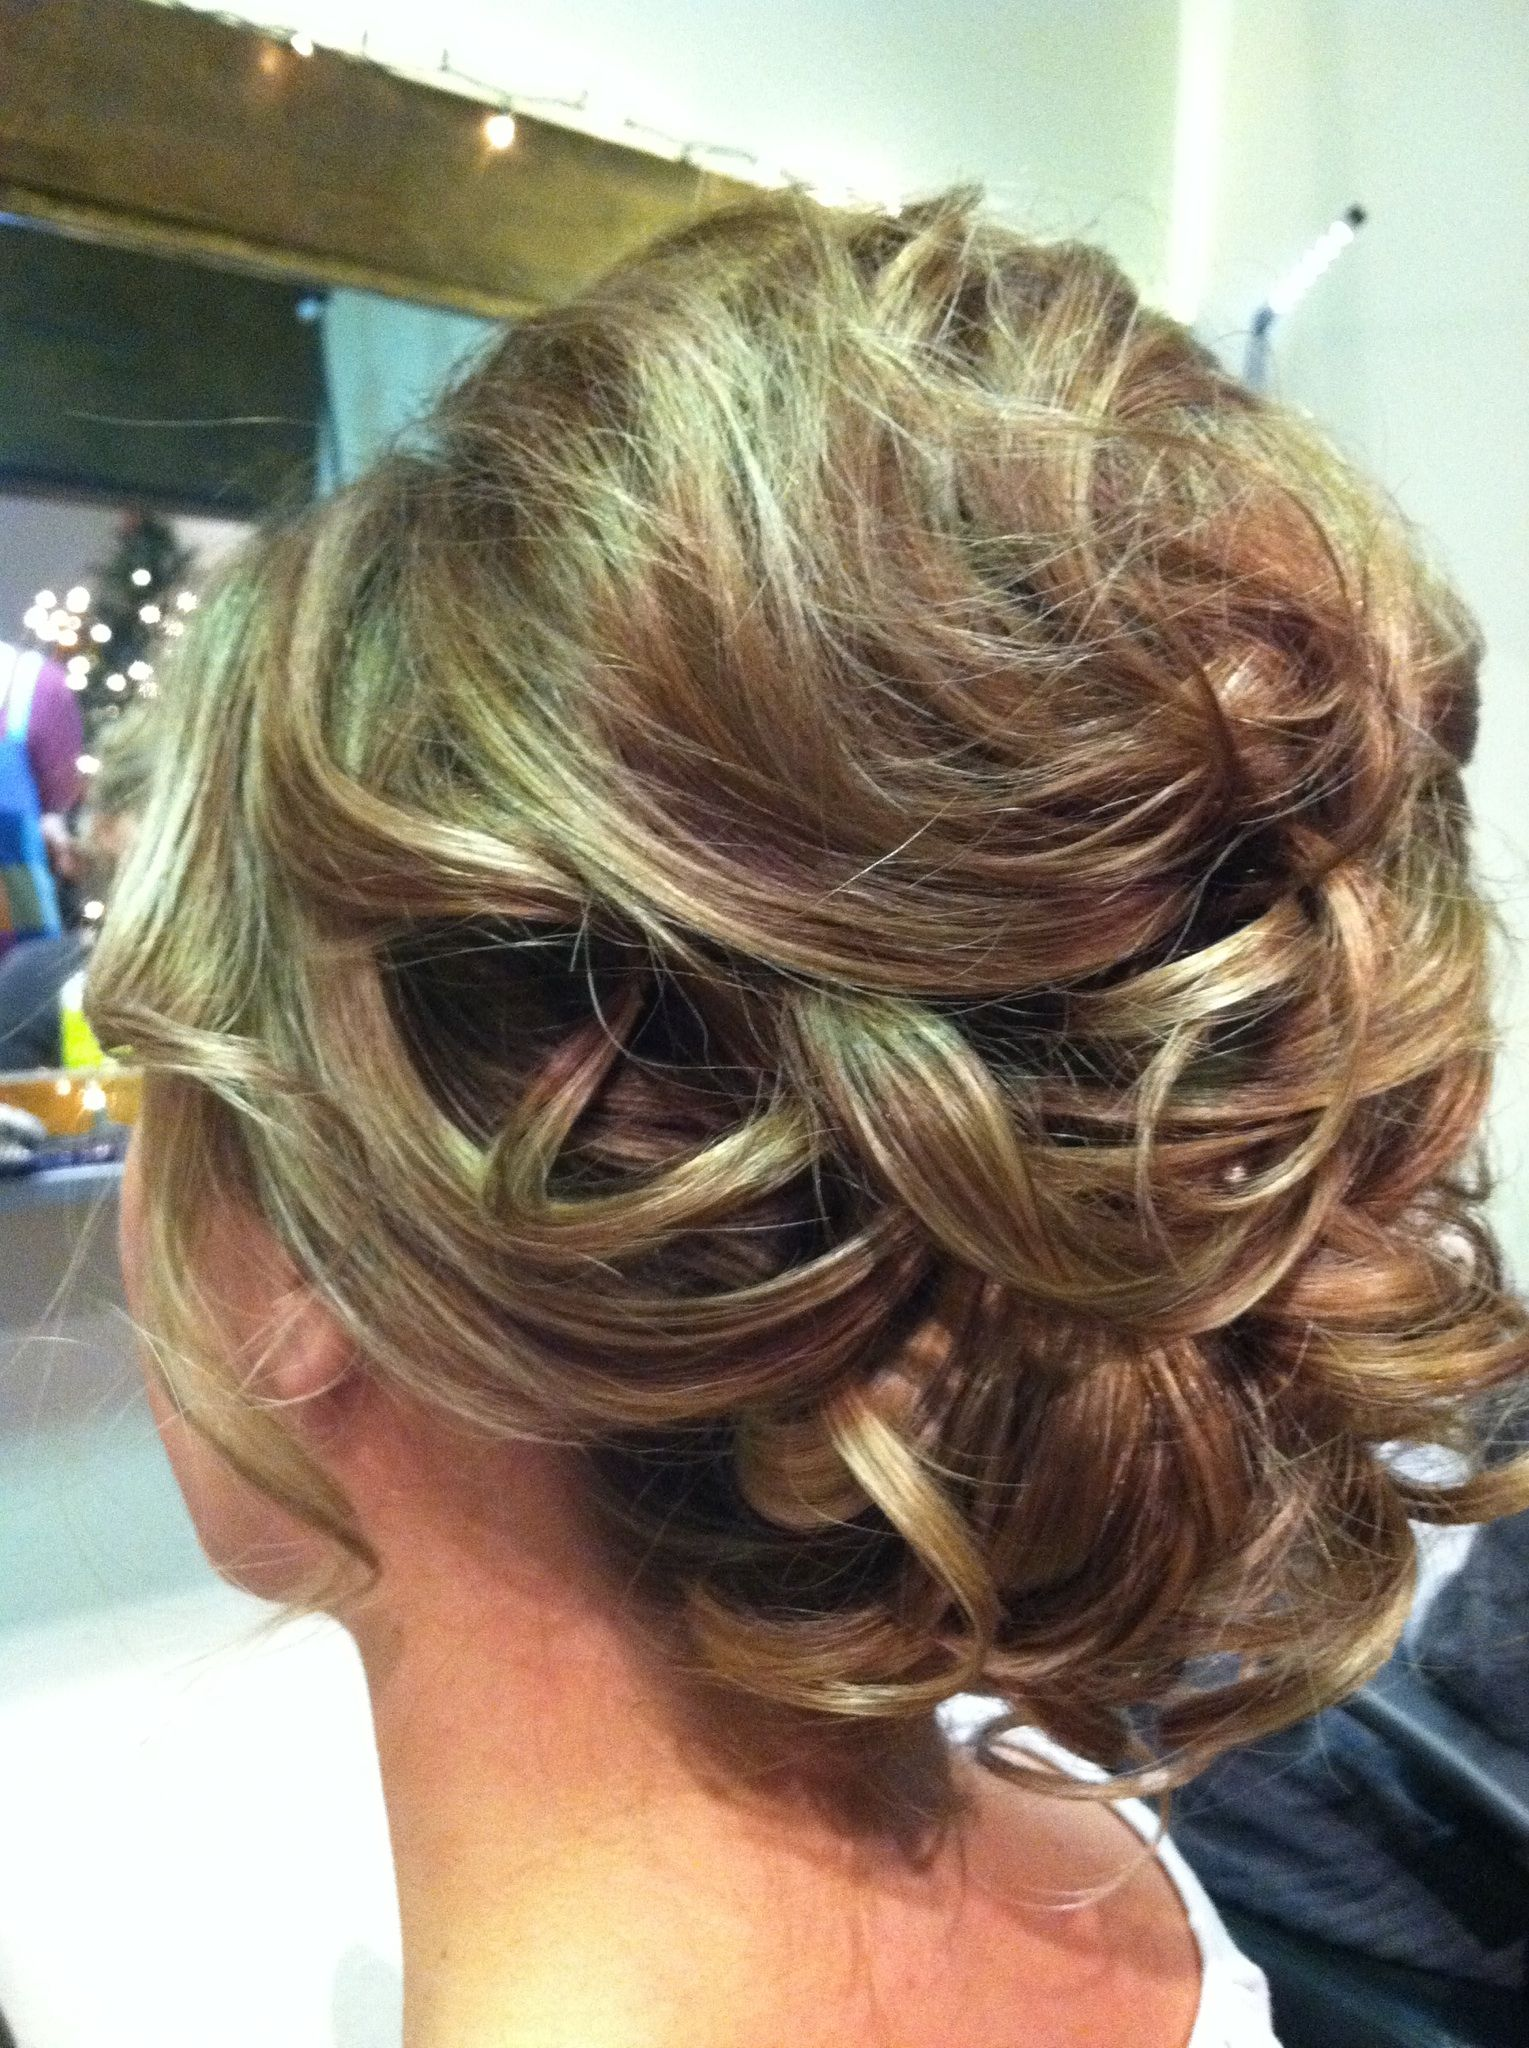 I want to try this updo hair wedding hair pinterest updo